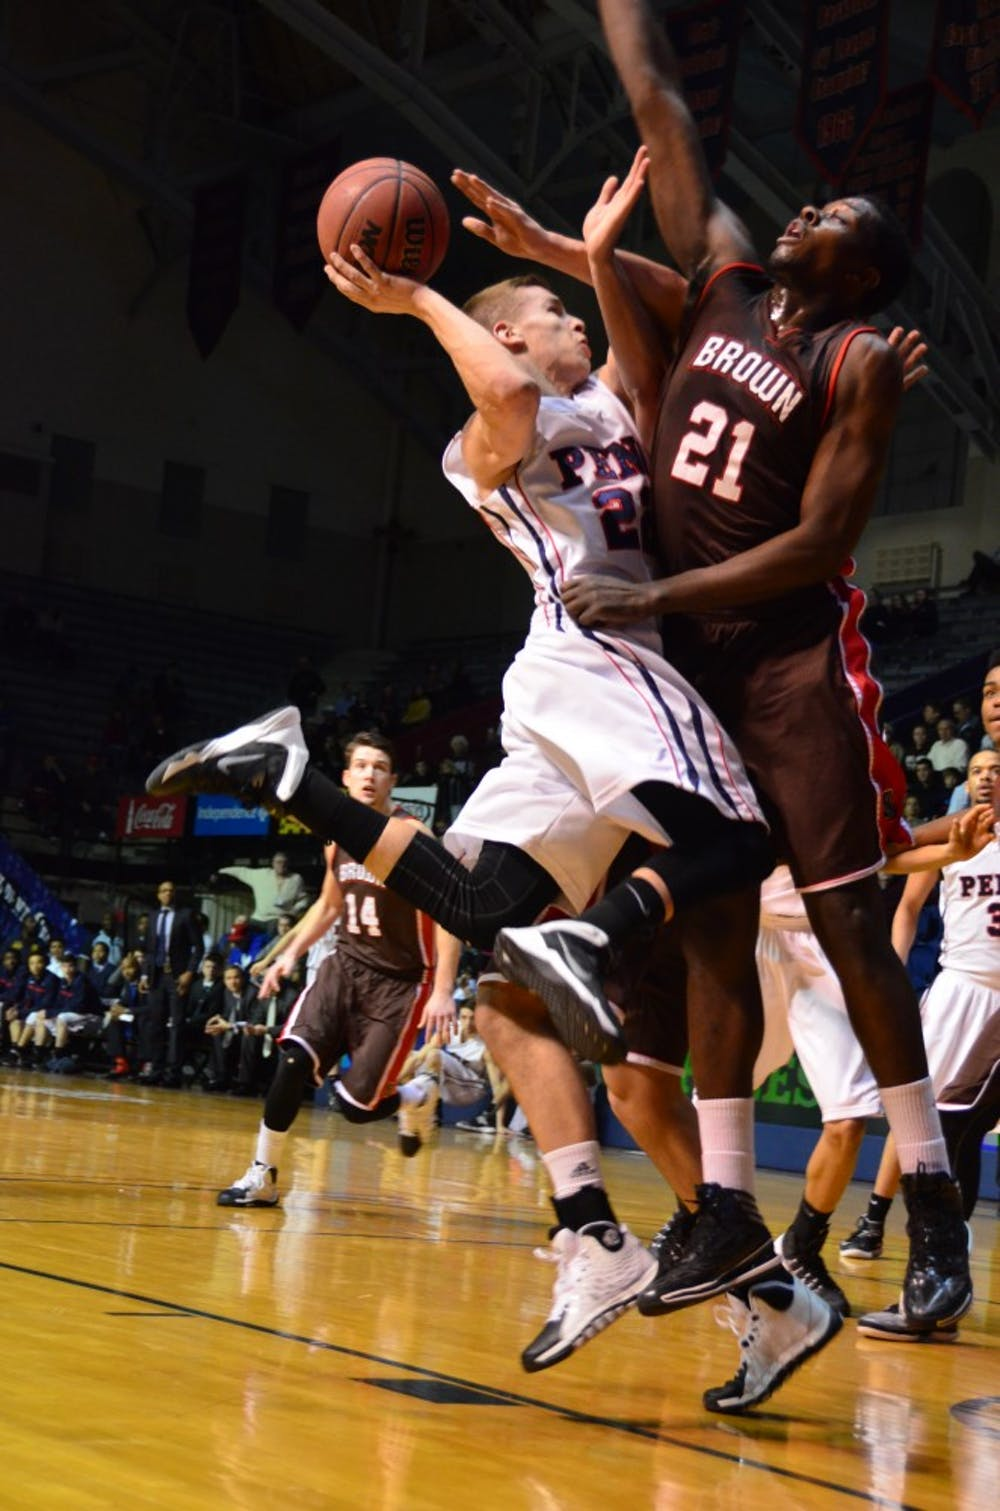 Men's Basketball plays Brown at the Palestra.